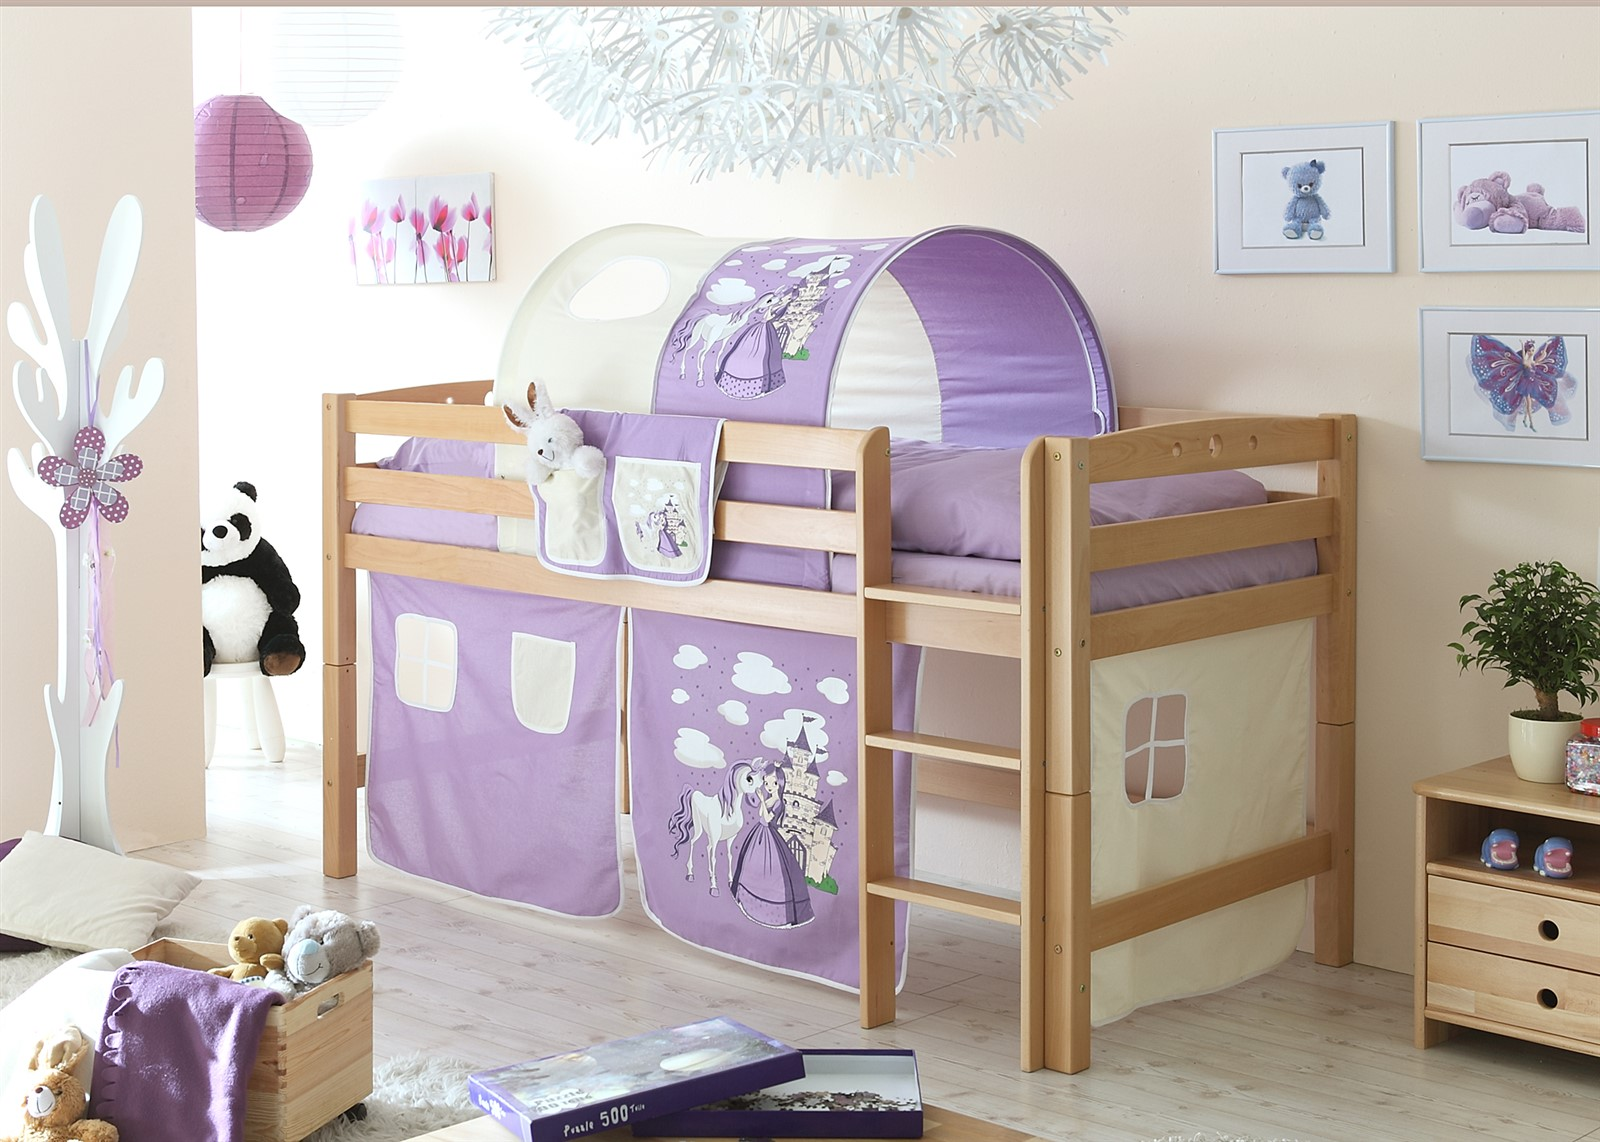 hochbett etagenbett spielbett oli buche massiv ebay. Black Bedroom Furniture Sets. Home Design Ideas